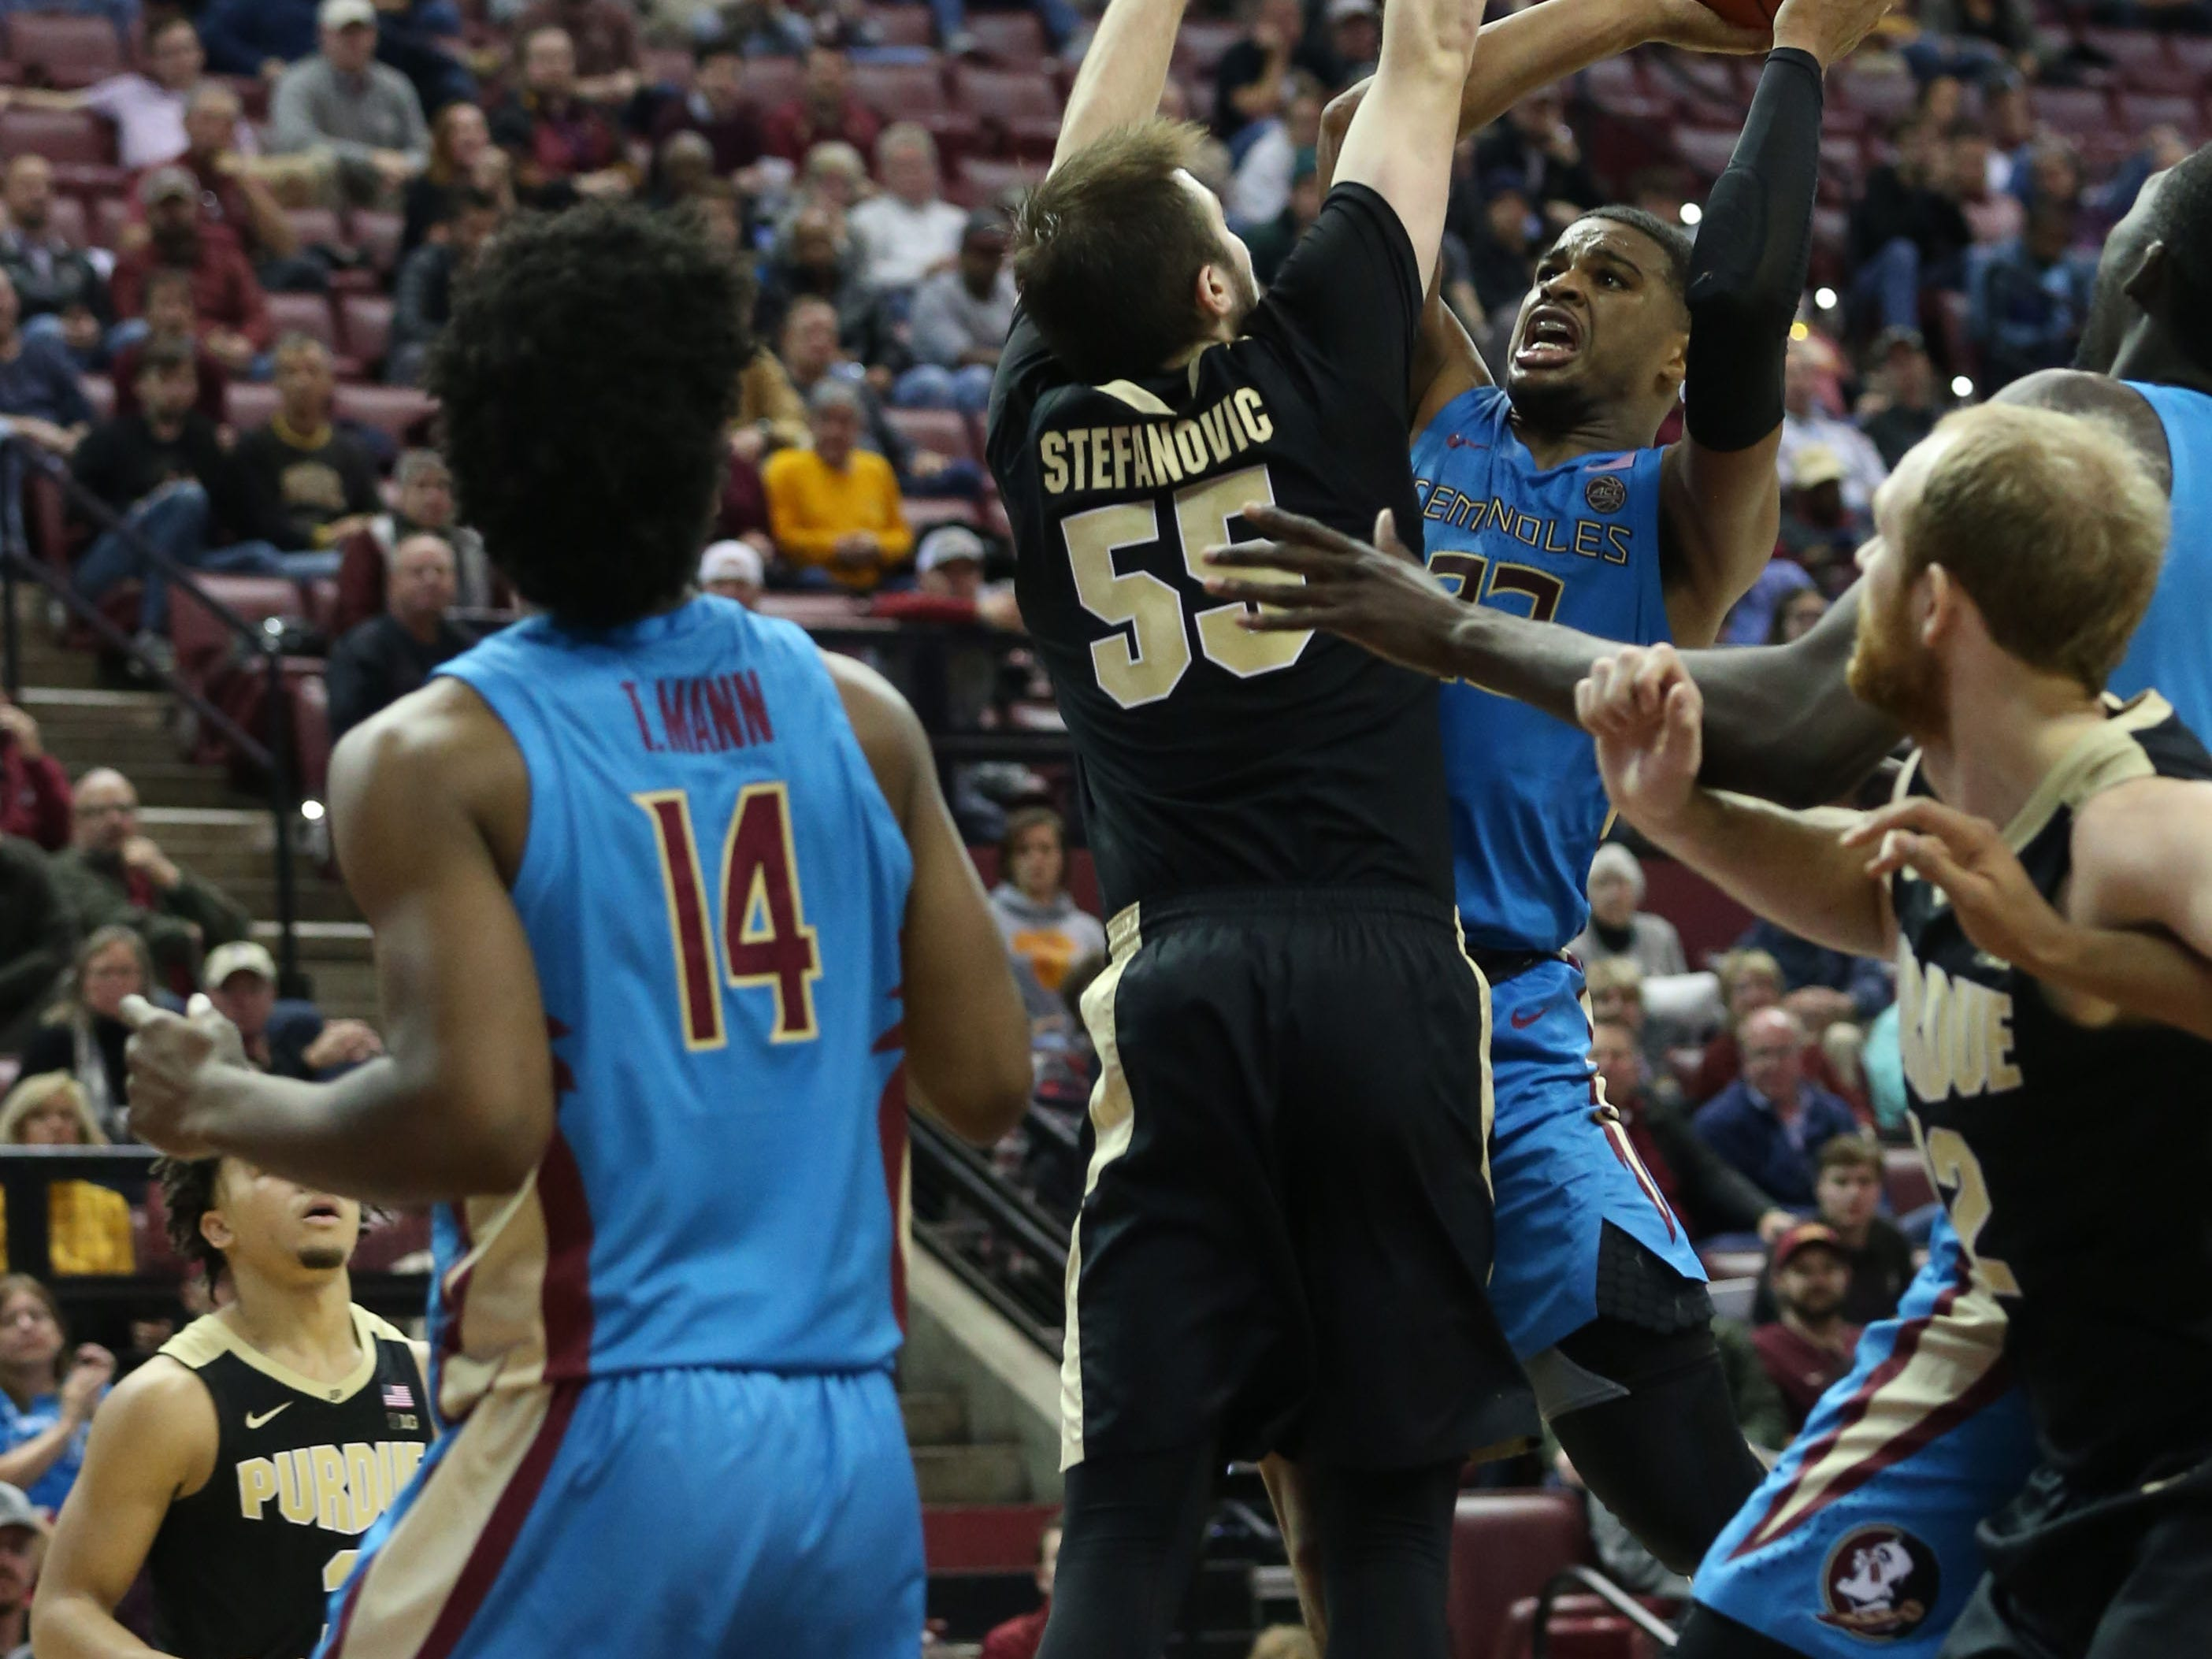 The Florida State Seminoles host the Purdue Boilermakers at the Tucker Civic Center, Wednesday, Nov. 28, 2018.